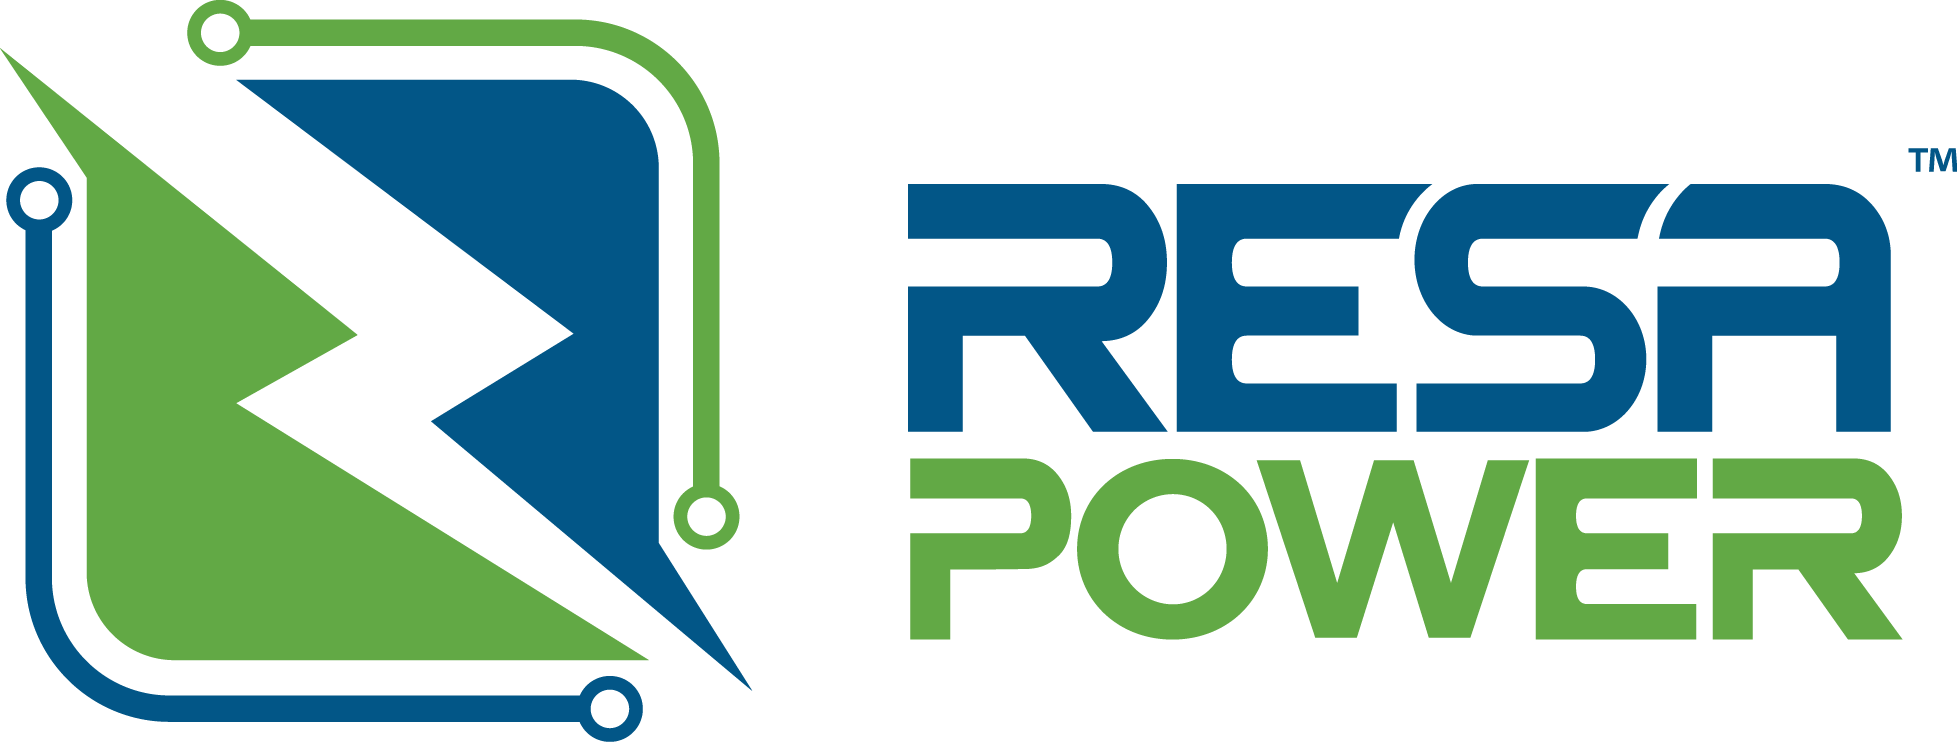 Resa Power Expands Service Footprint With Acquisition Of